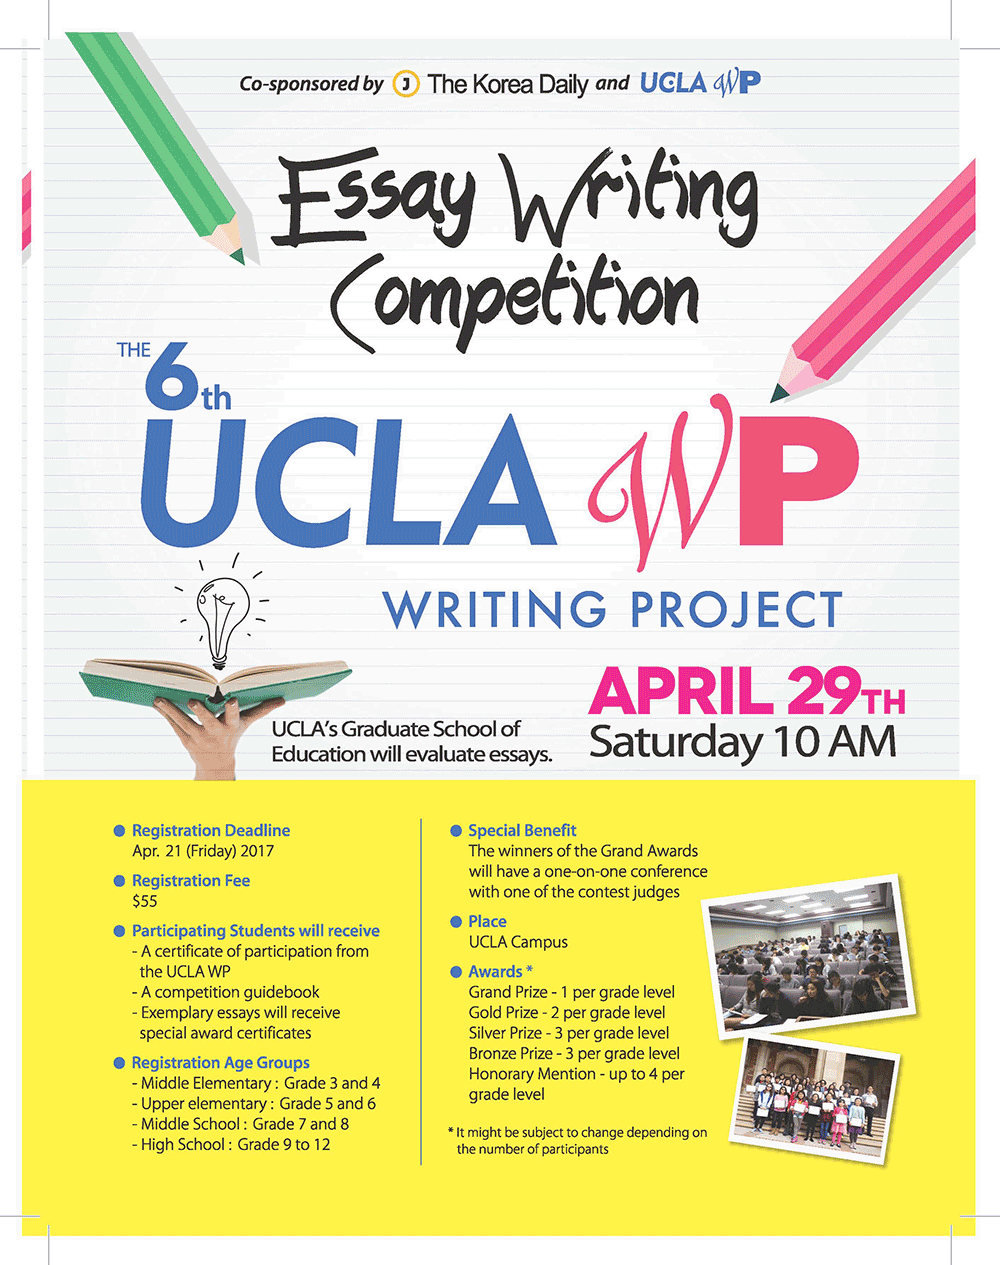 008 Essay Writing Contest Example Uclakoreandaily Incredible Free Contests 2018 International Competitions For High School Students India Full